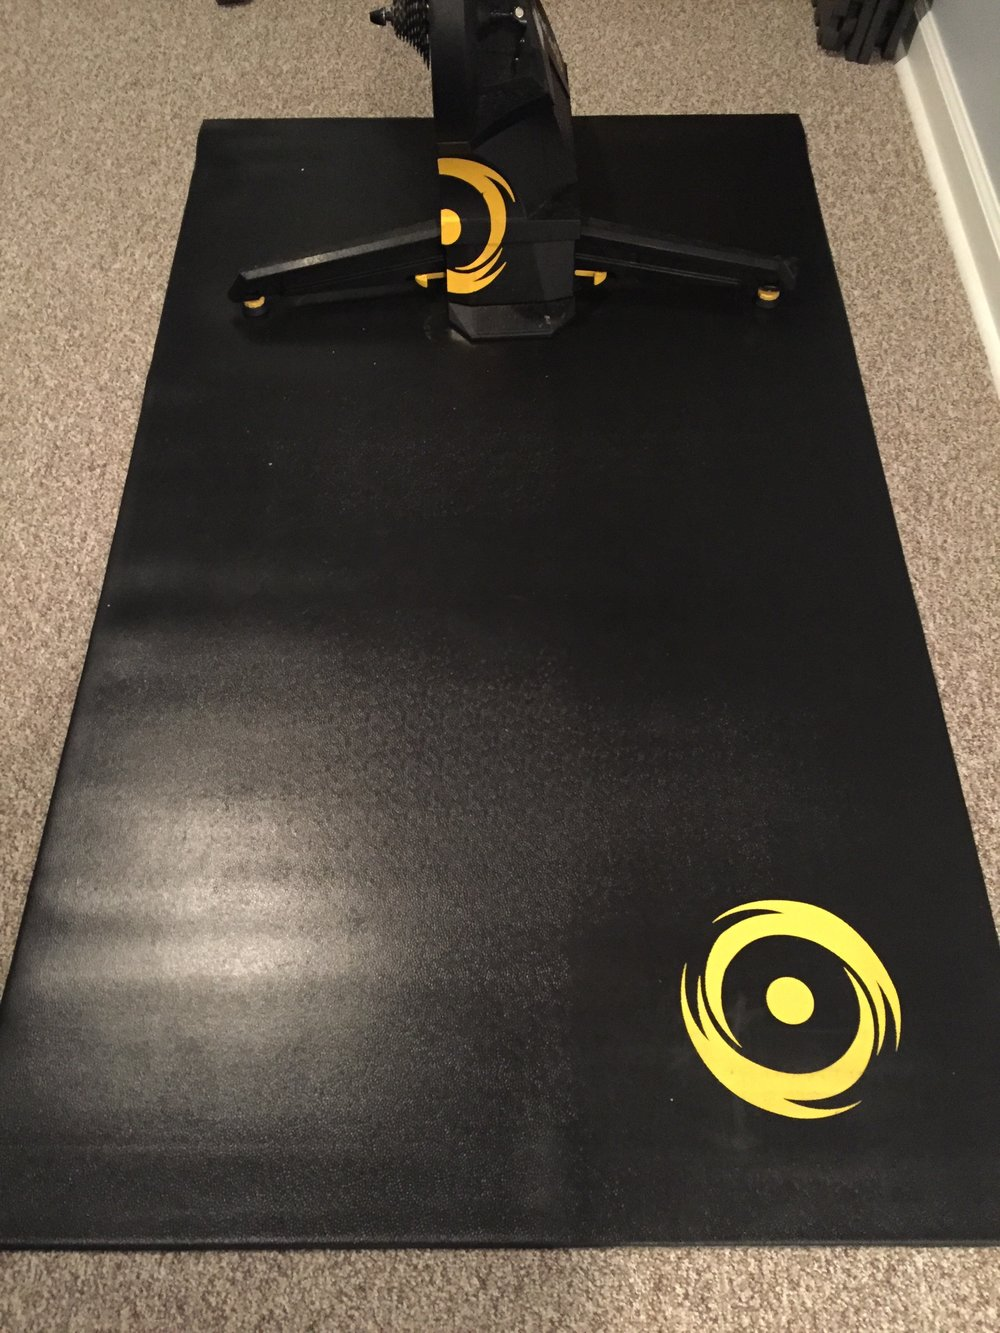 It's like the CycleOps H2 (Hammer) smart trainer and Training Mat were meant for each other.